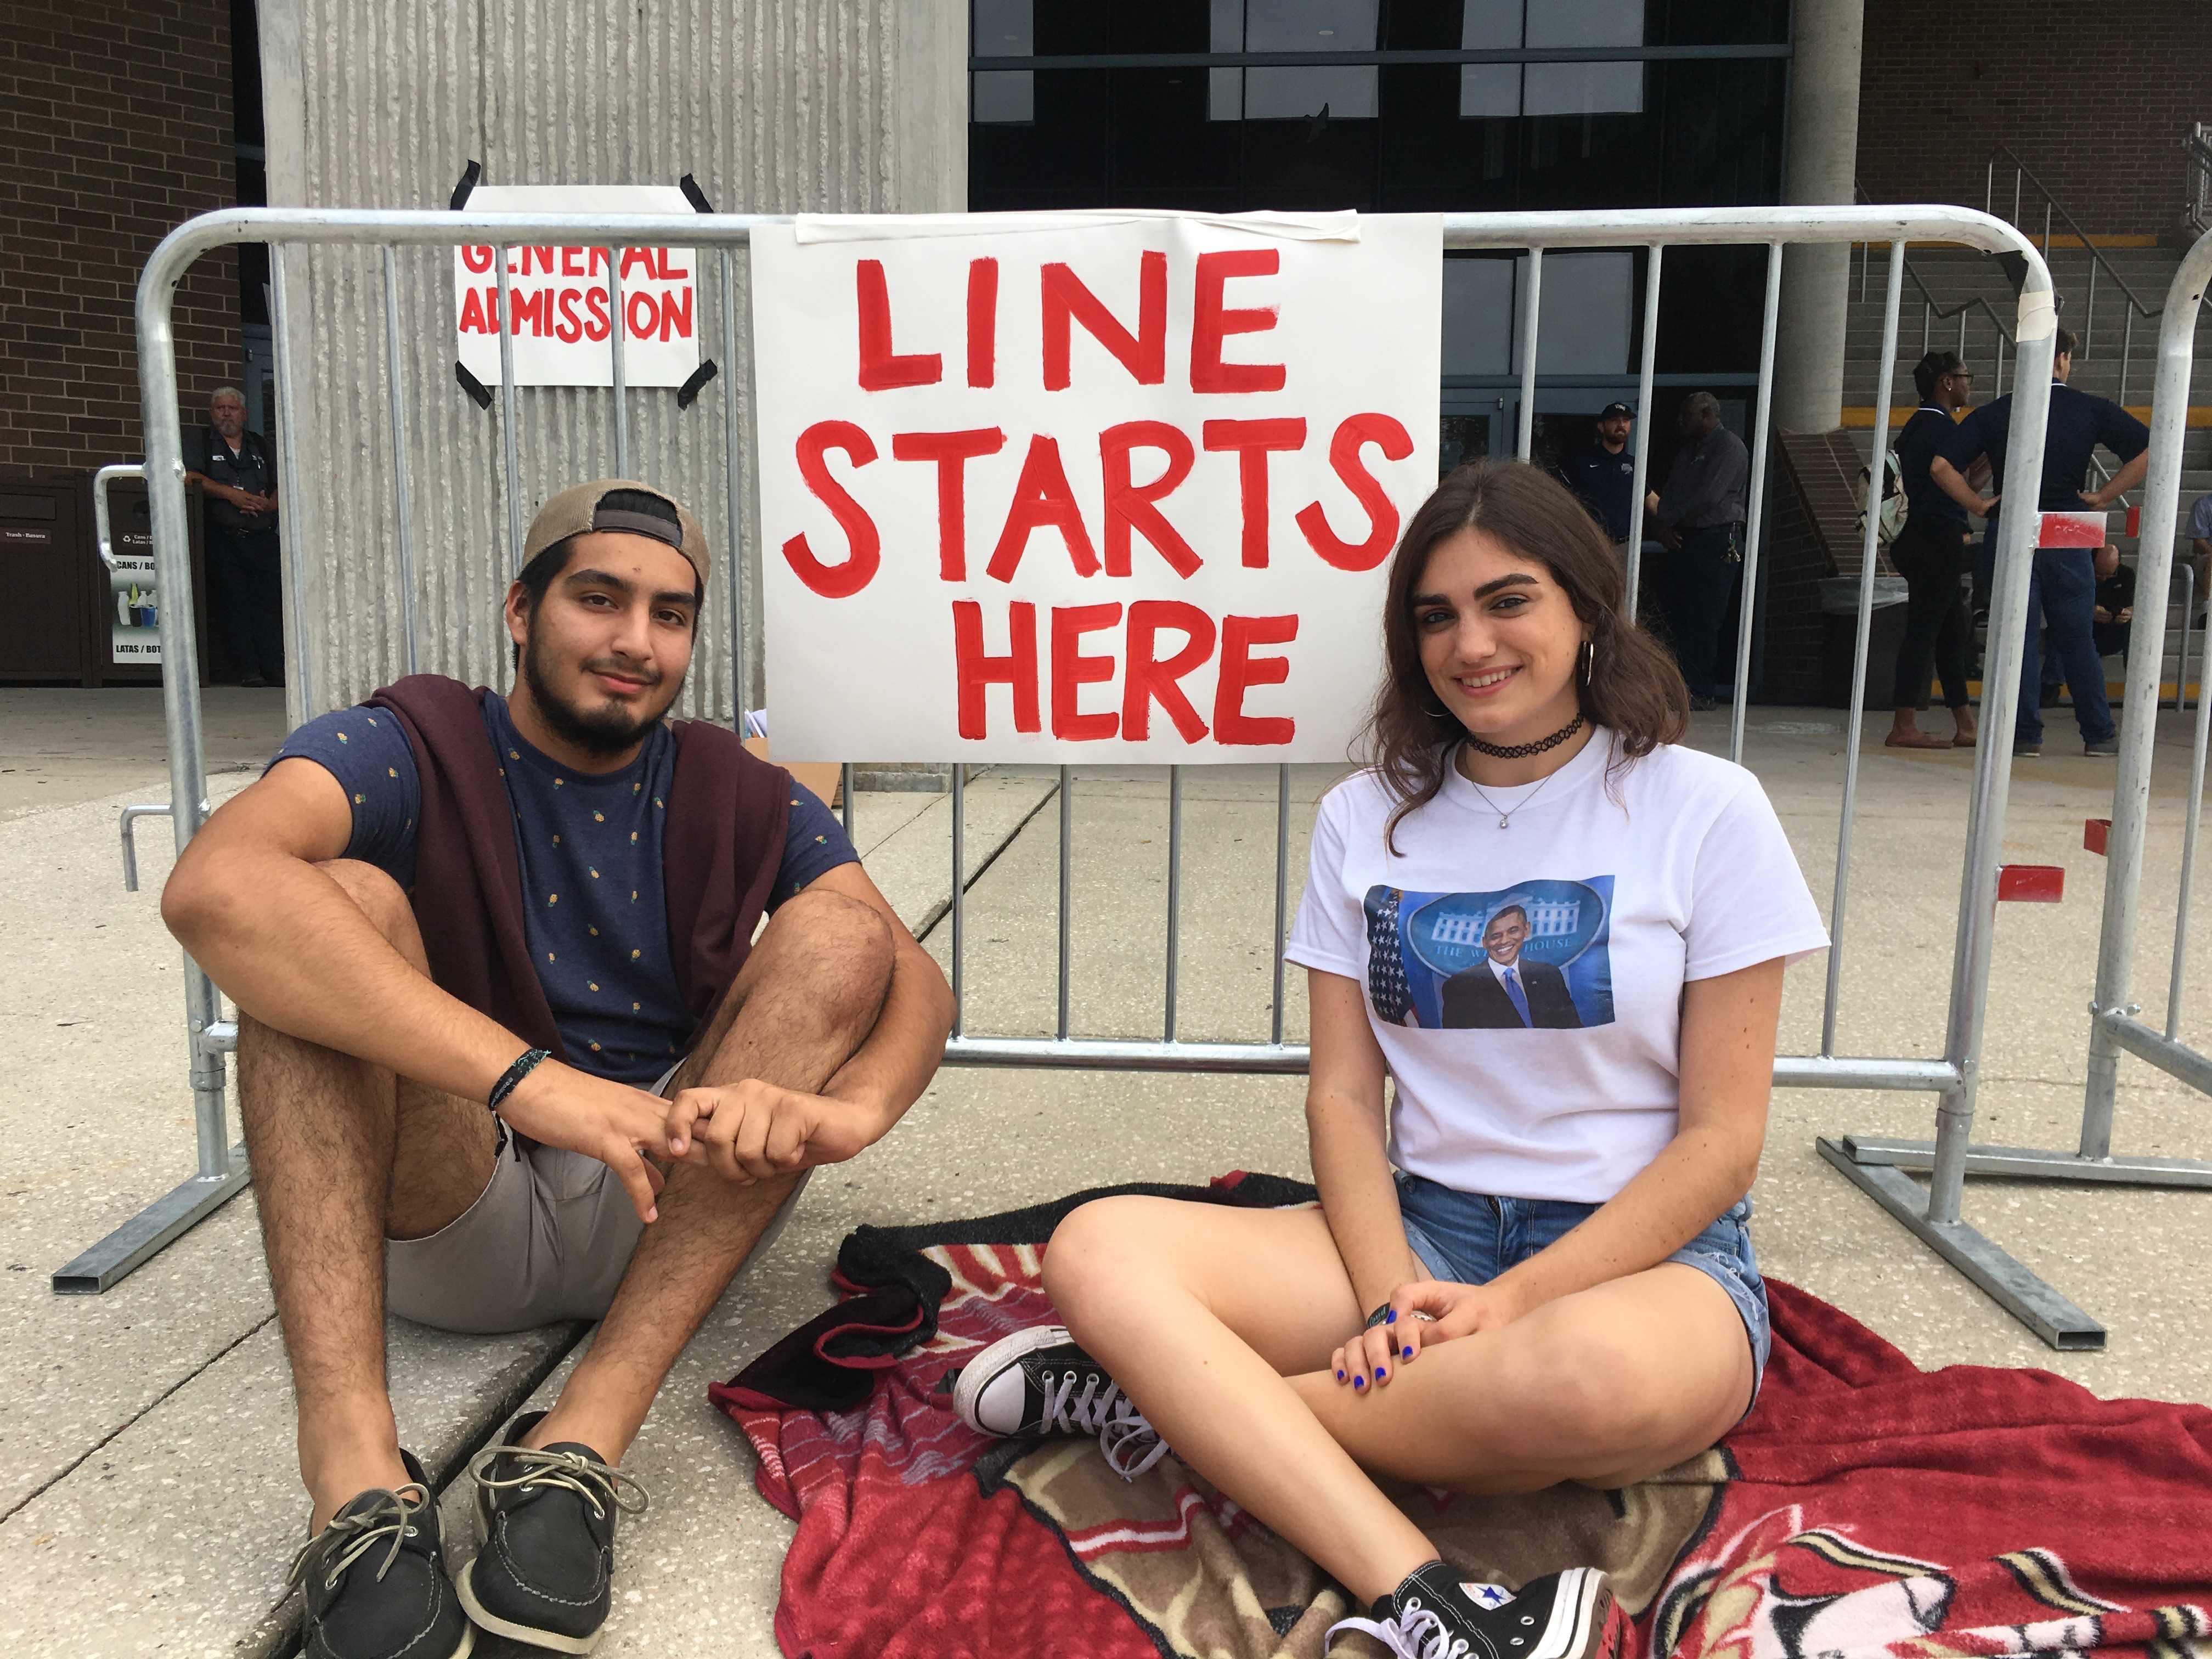 Sophomores Alexis Kmieck and Albaro Barrios got in line at 1 a.m. so they could be the first ones in. <i>Photo by Tiffany Butler</i>